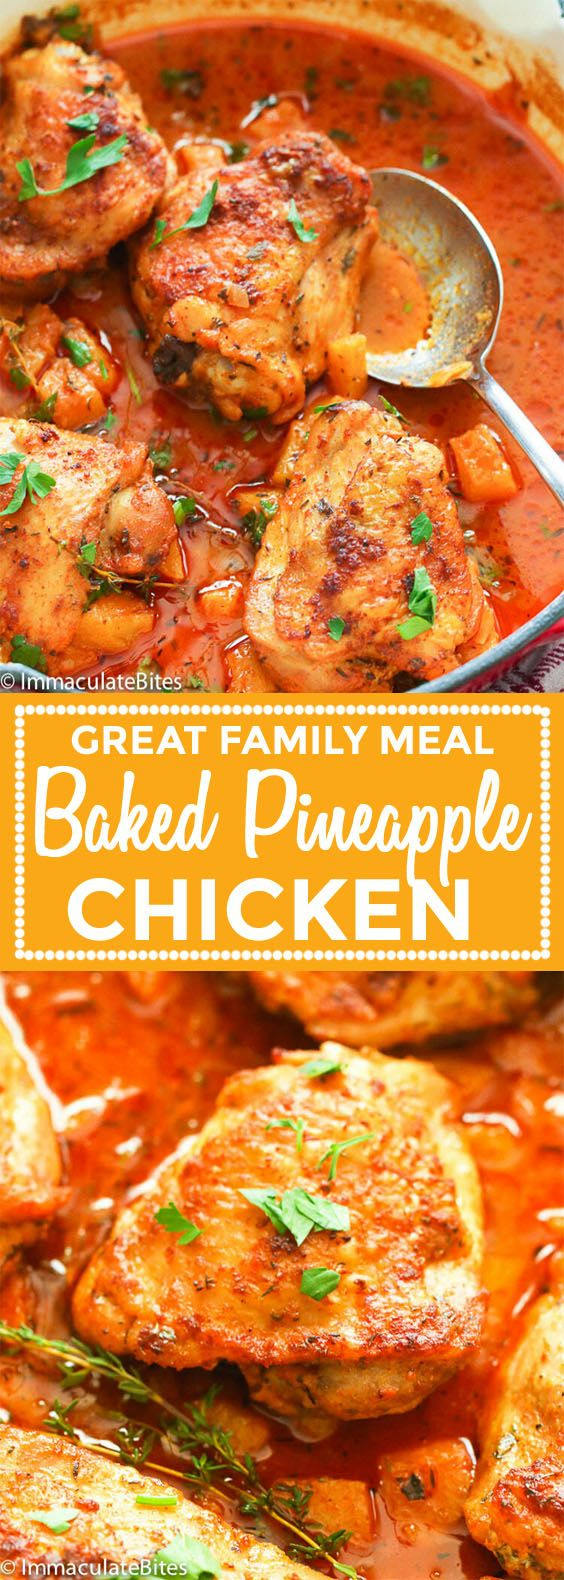 Baked Pineapple Chicken images